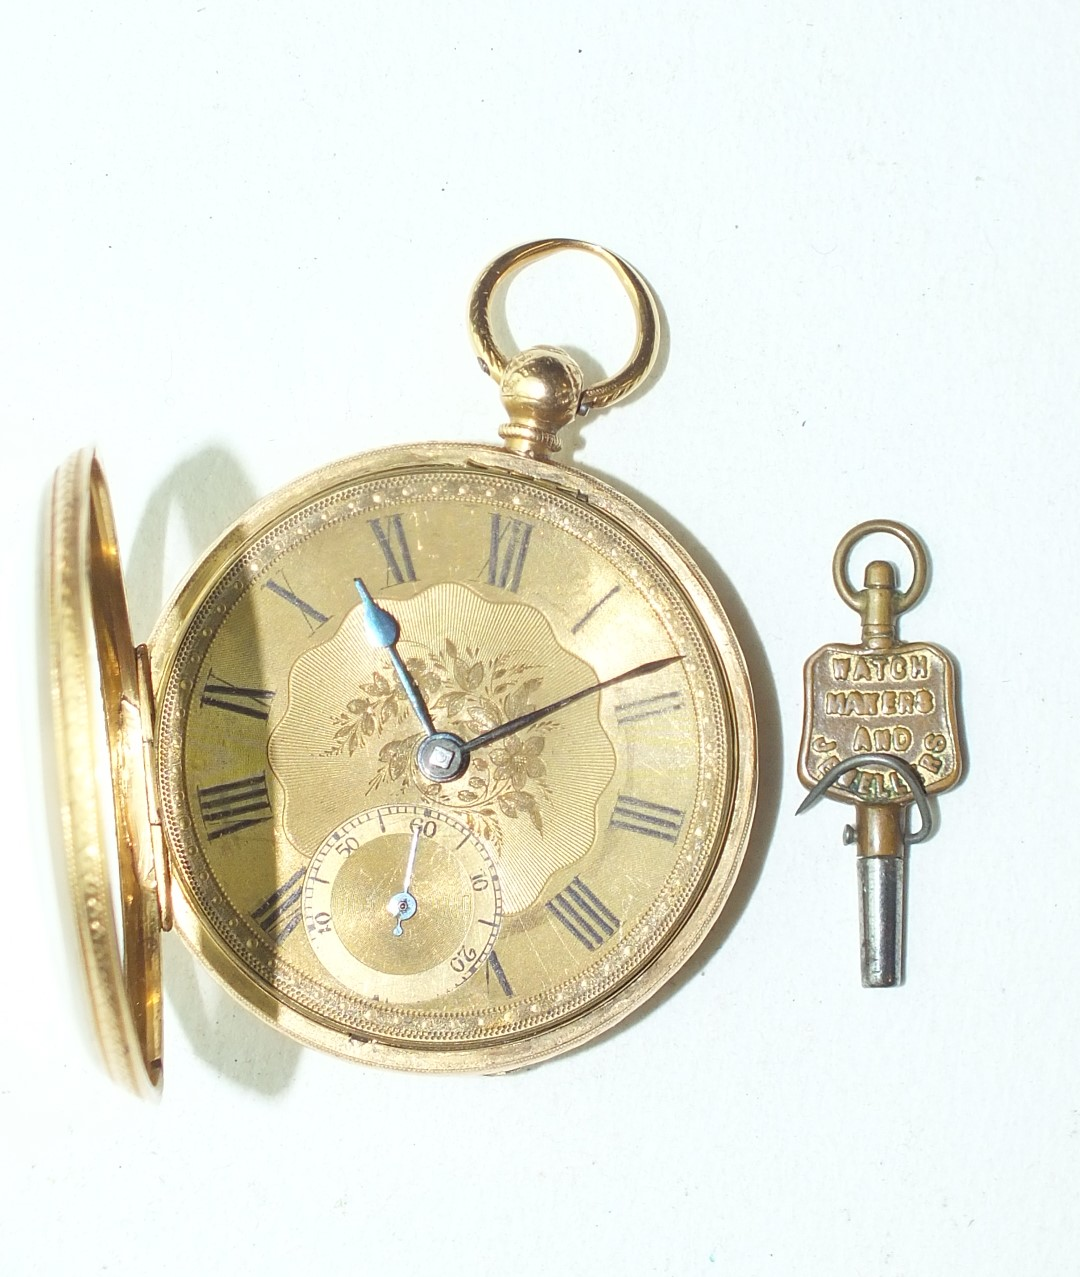 Lot 261 - A gentleman's 18ct-gold-cased open-face key-wind pocket watch, the engraved gilt face with Roman